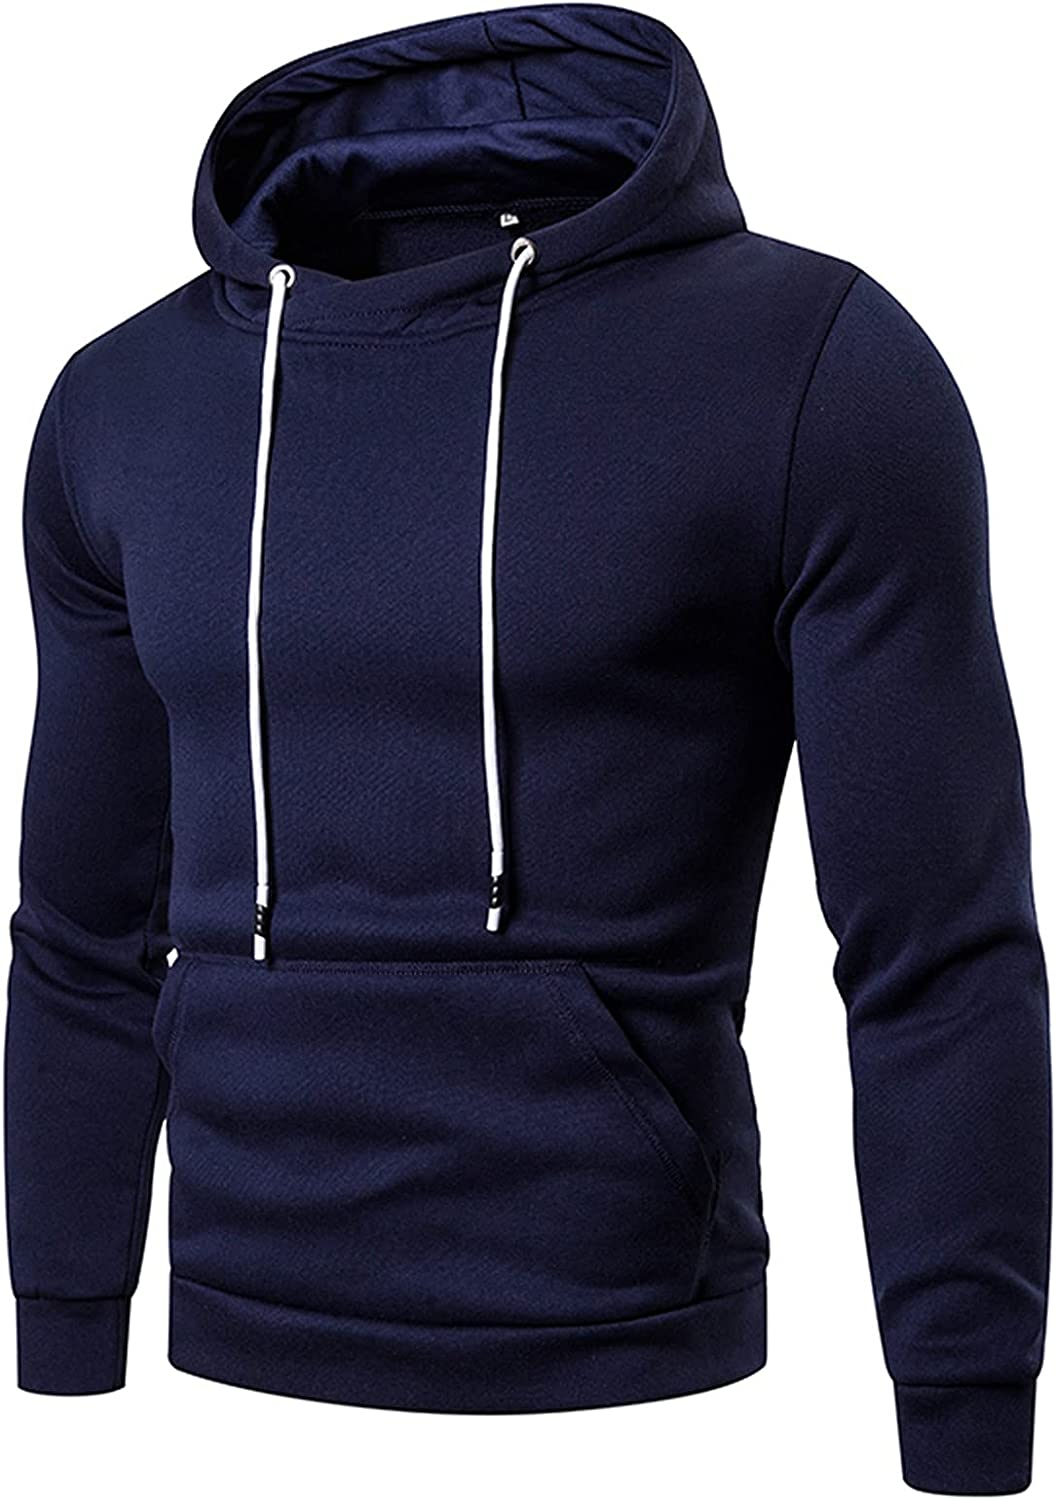 Huangse Men's Long Sleeve Solid Sweatshirt Casual Drawstring Hooded Pullover Fitness Running Athletic Kangaroo Pocket Outfit